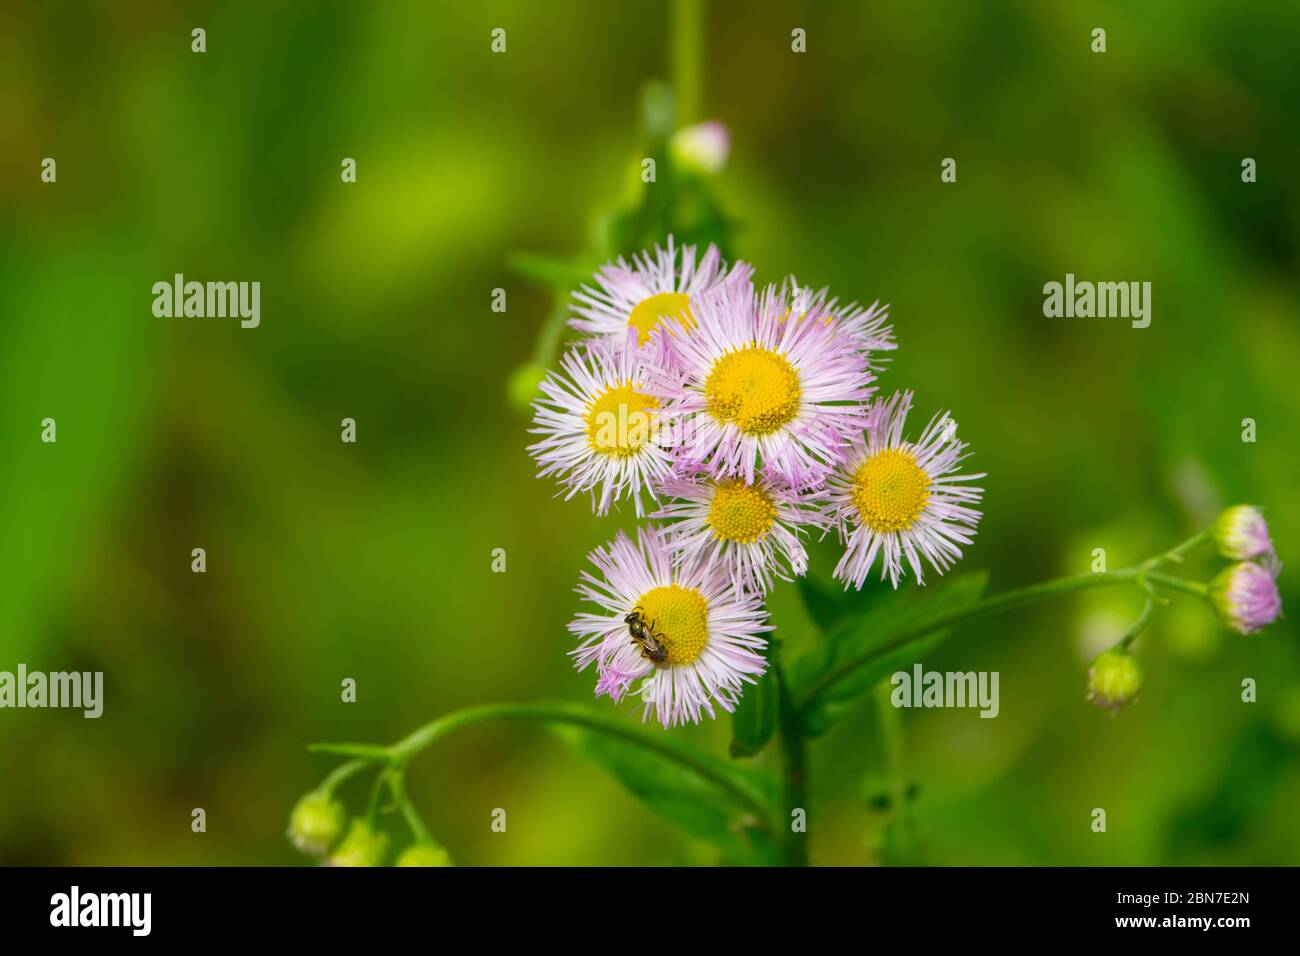 flowers-daisey-wildflower-purple-petals-yellow-mid-atlantic-maryland-2BN7E2N.jpg